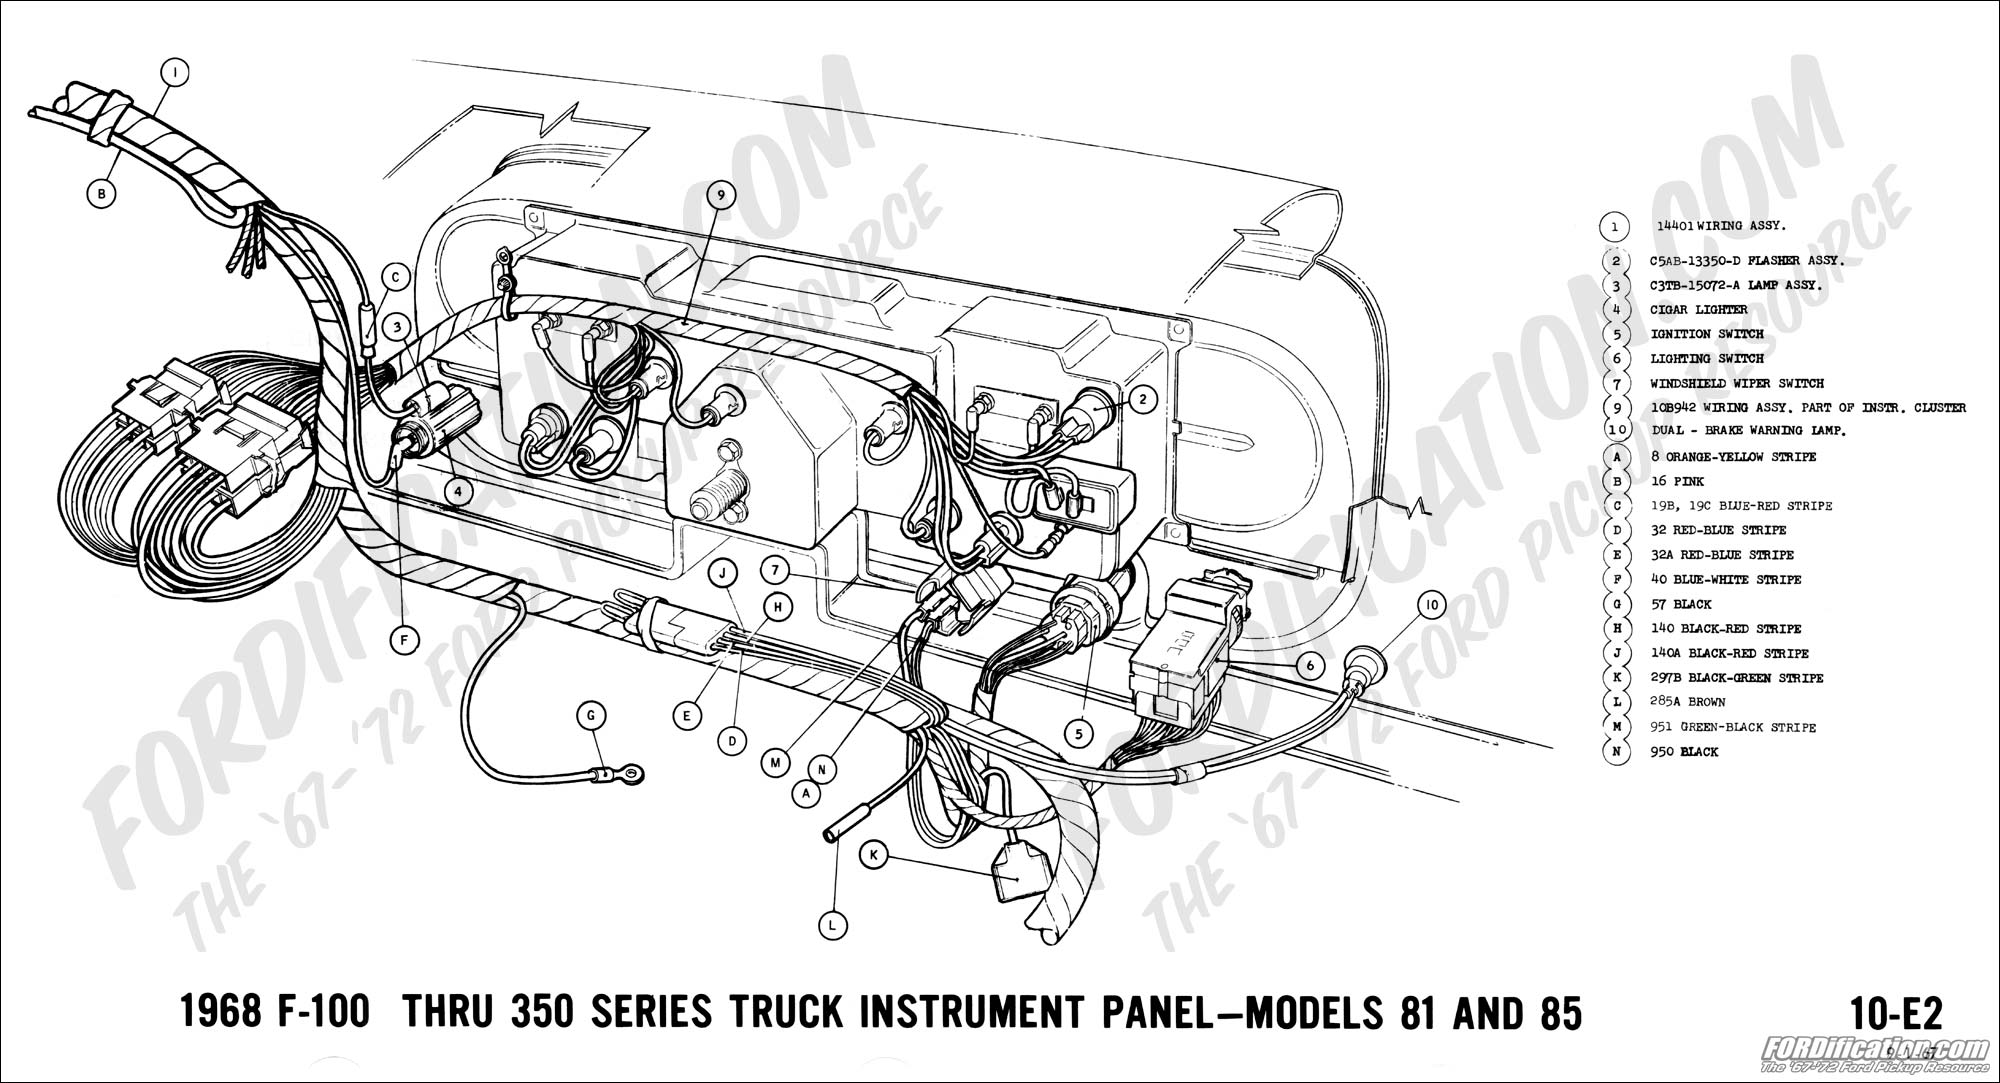 68 04 ford truck technical drawings and schematics section h wiring 1965 mustang instrument cluster wiring diagram at n-0.co